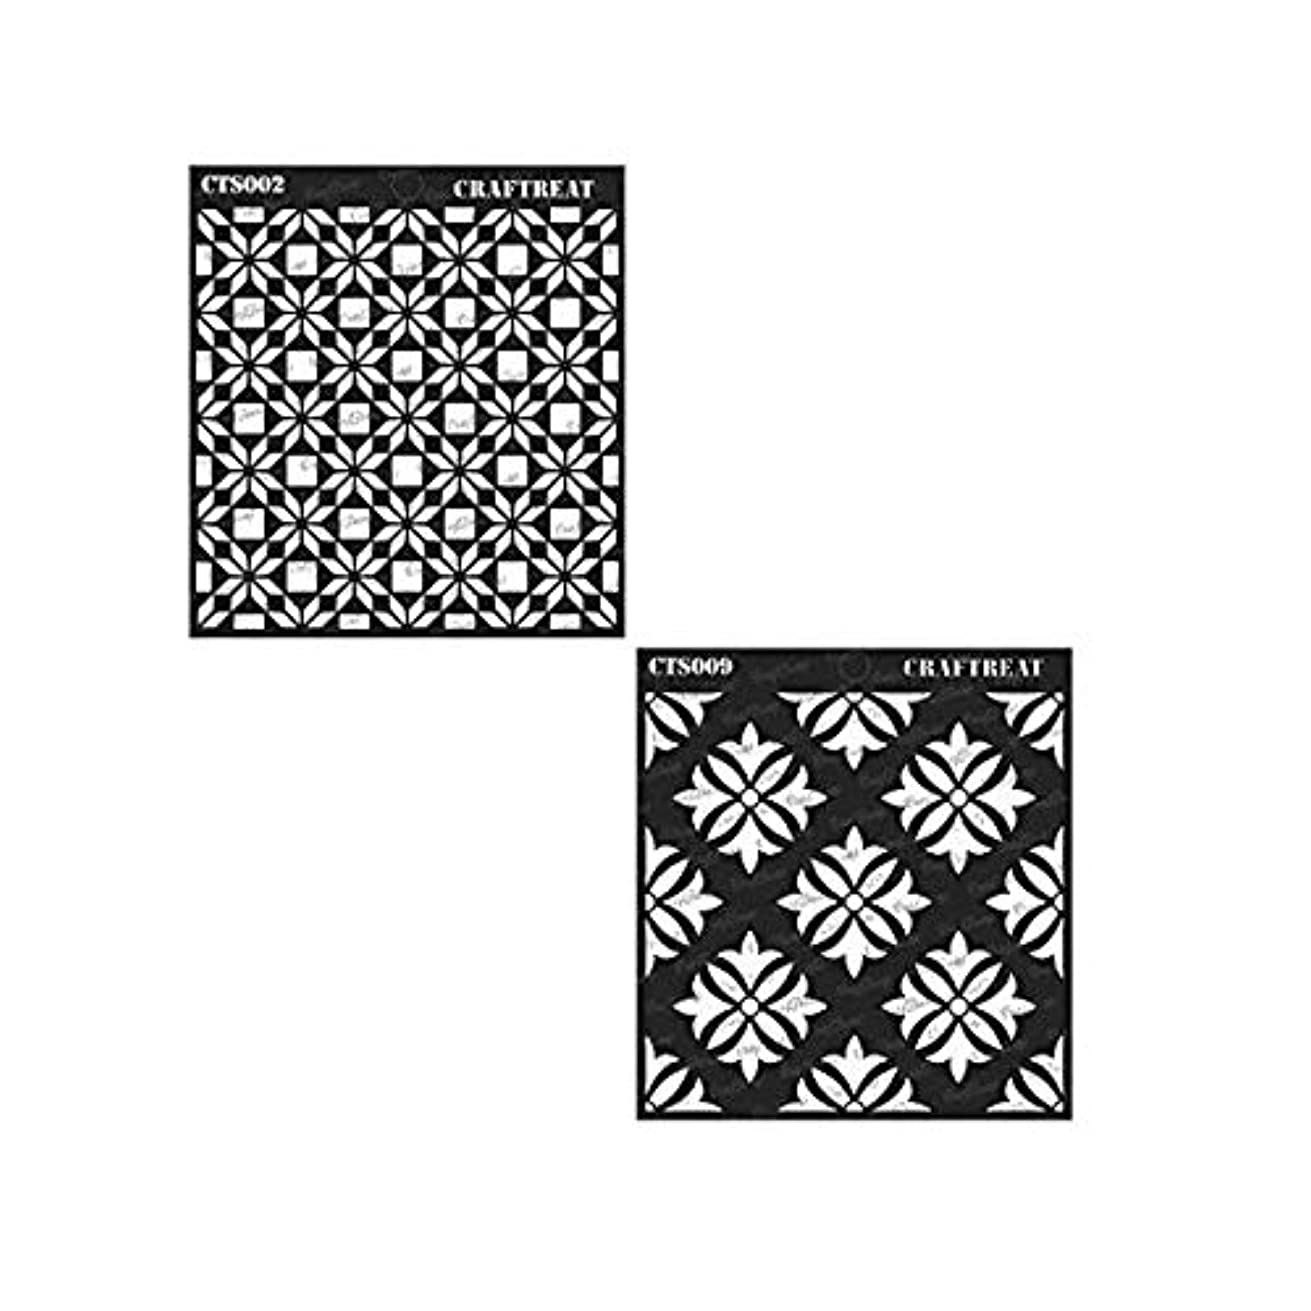 CrafTreat Flower Tile Stencil & Tuberose Stencil (2 pcs) | Reusable Painting Template for Home Decor, Crafting, DIY Albums and Printing on Paper, Floor, Wall, Tile, Fabric, Wood 6